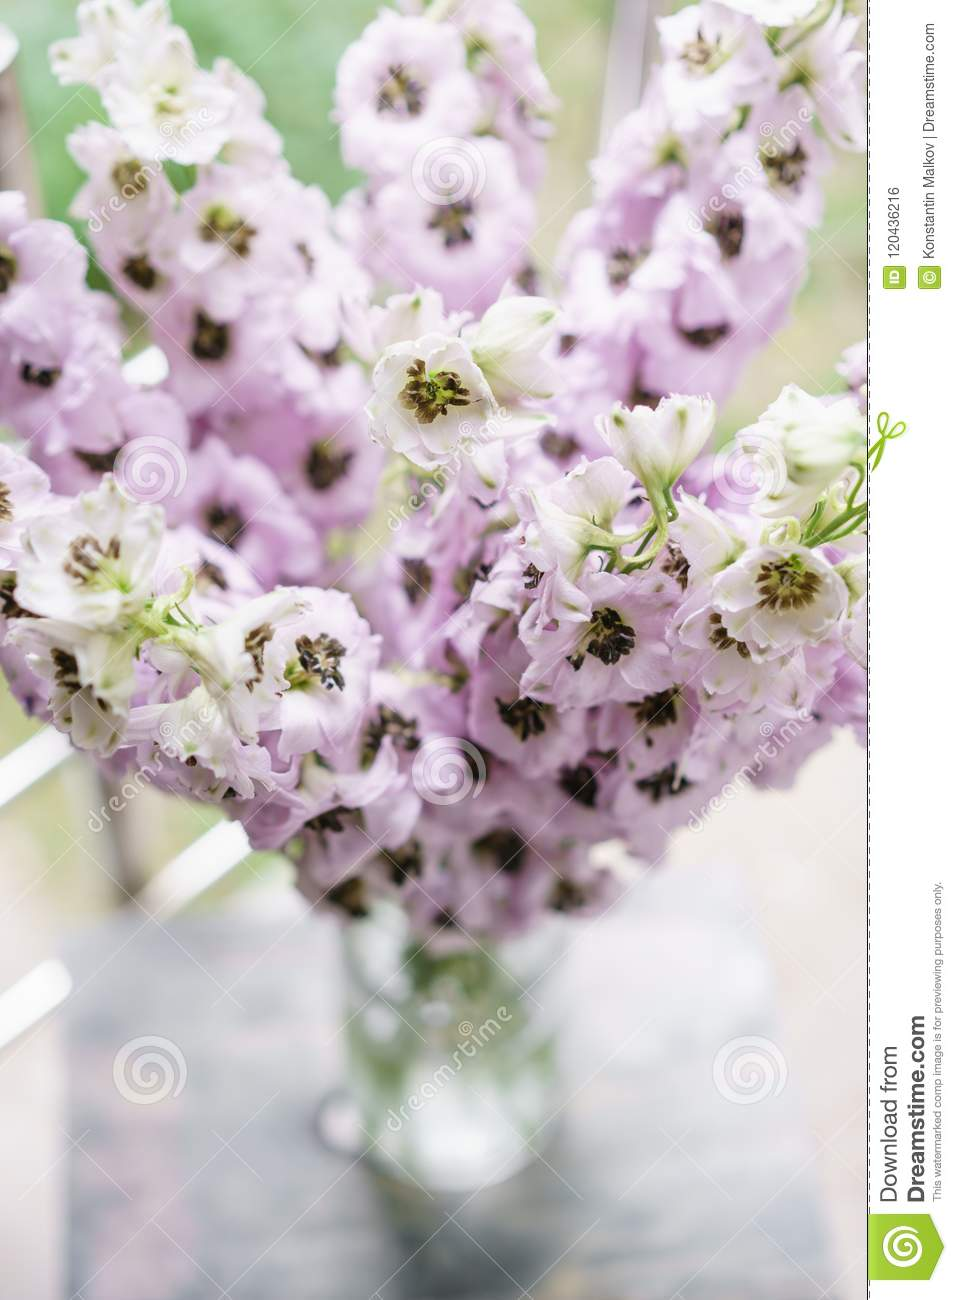 Lilac Delphiniums In Glass Vase On Gray Table Summer Wallpaper Selective Focus